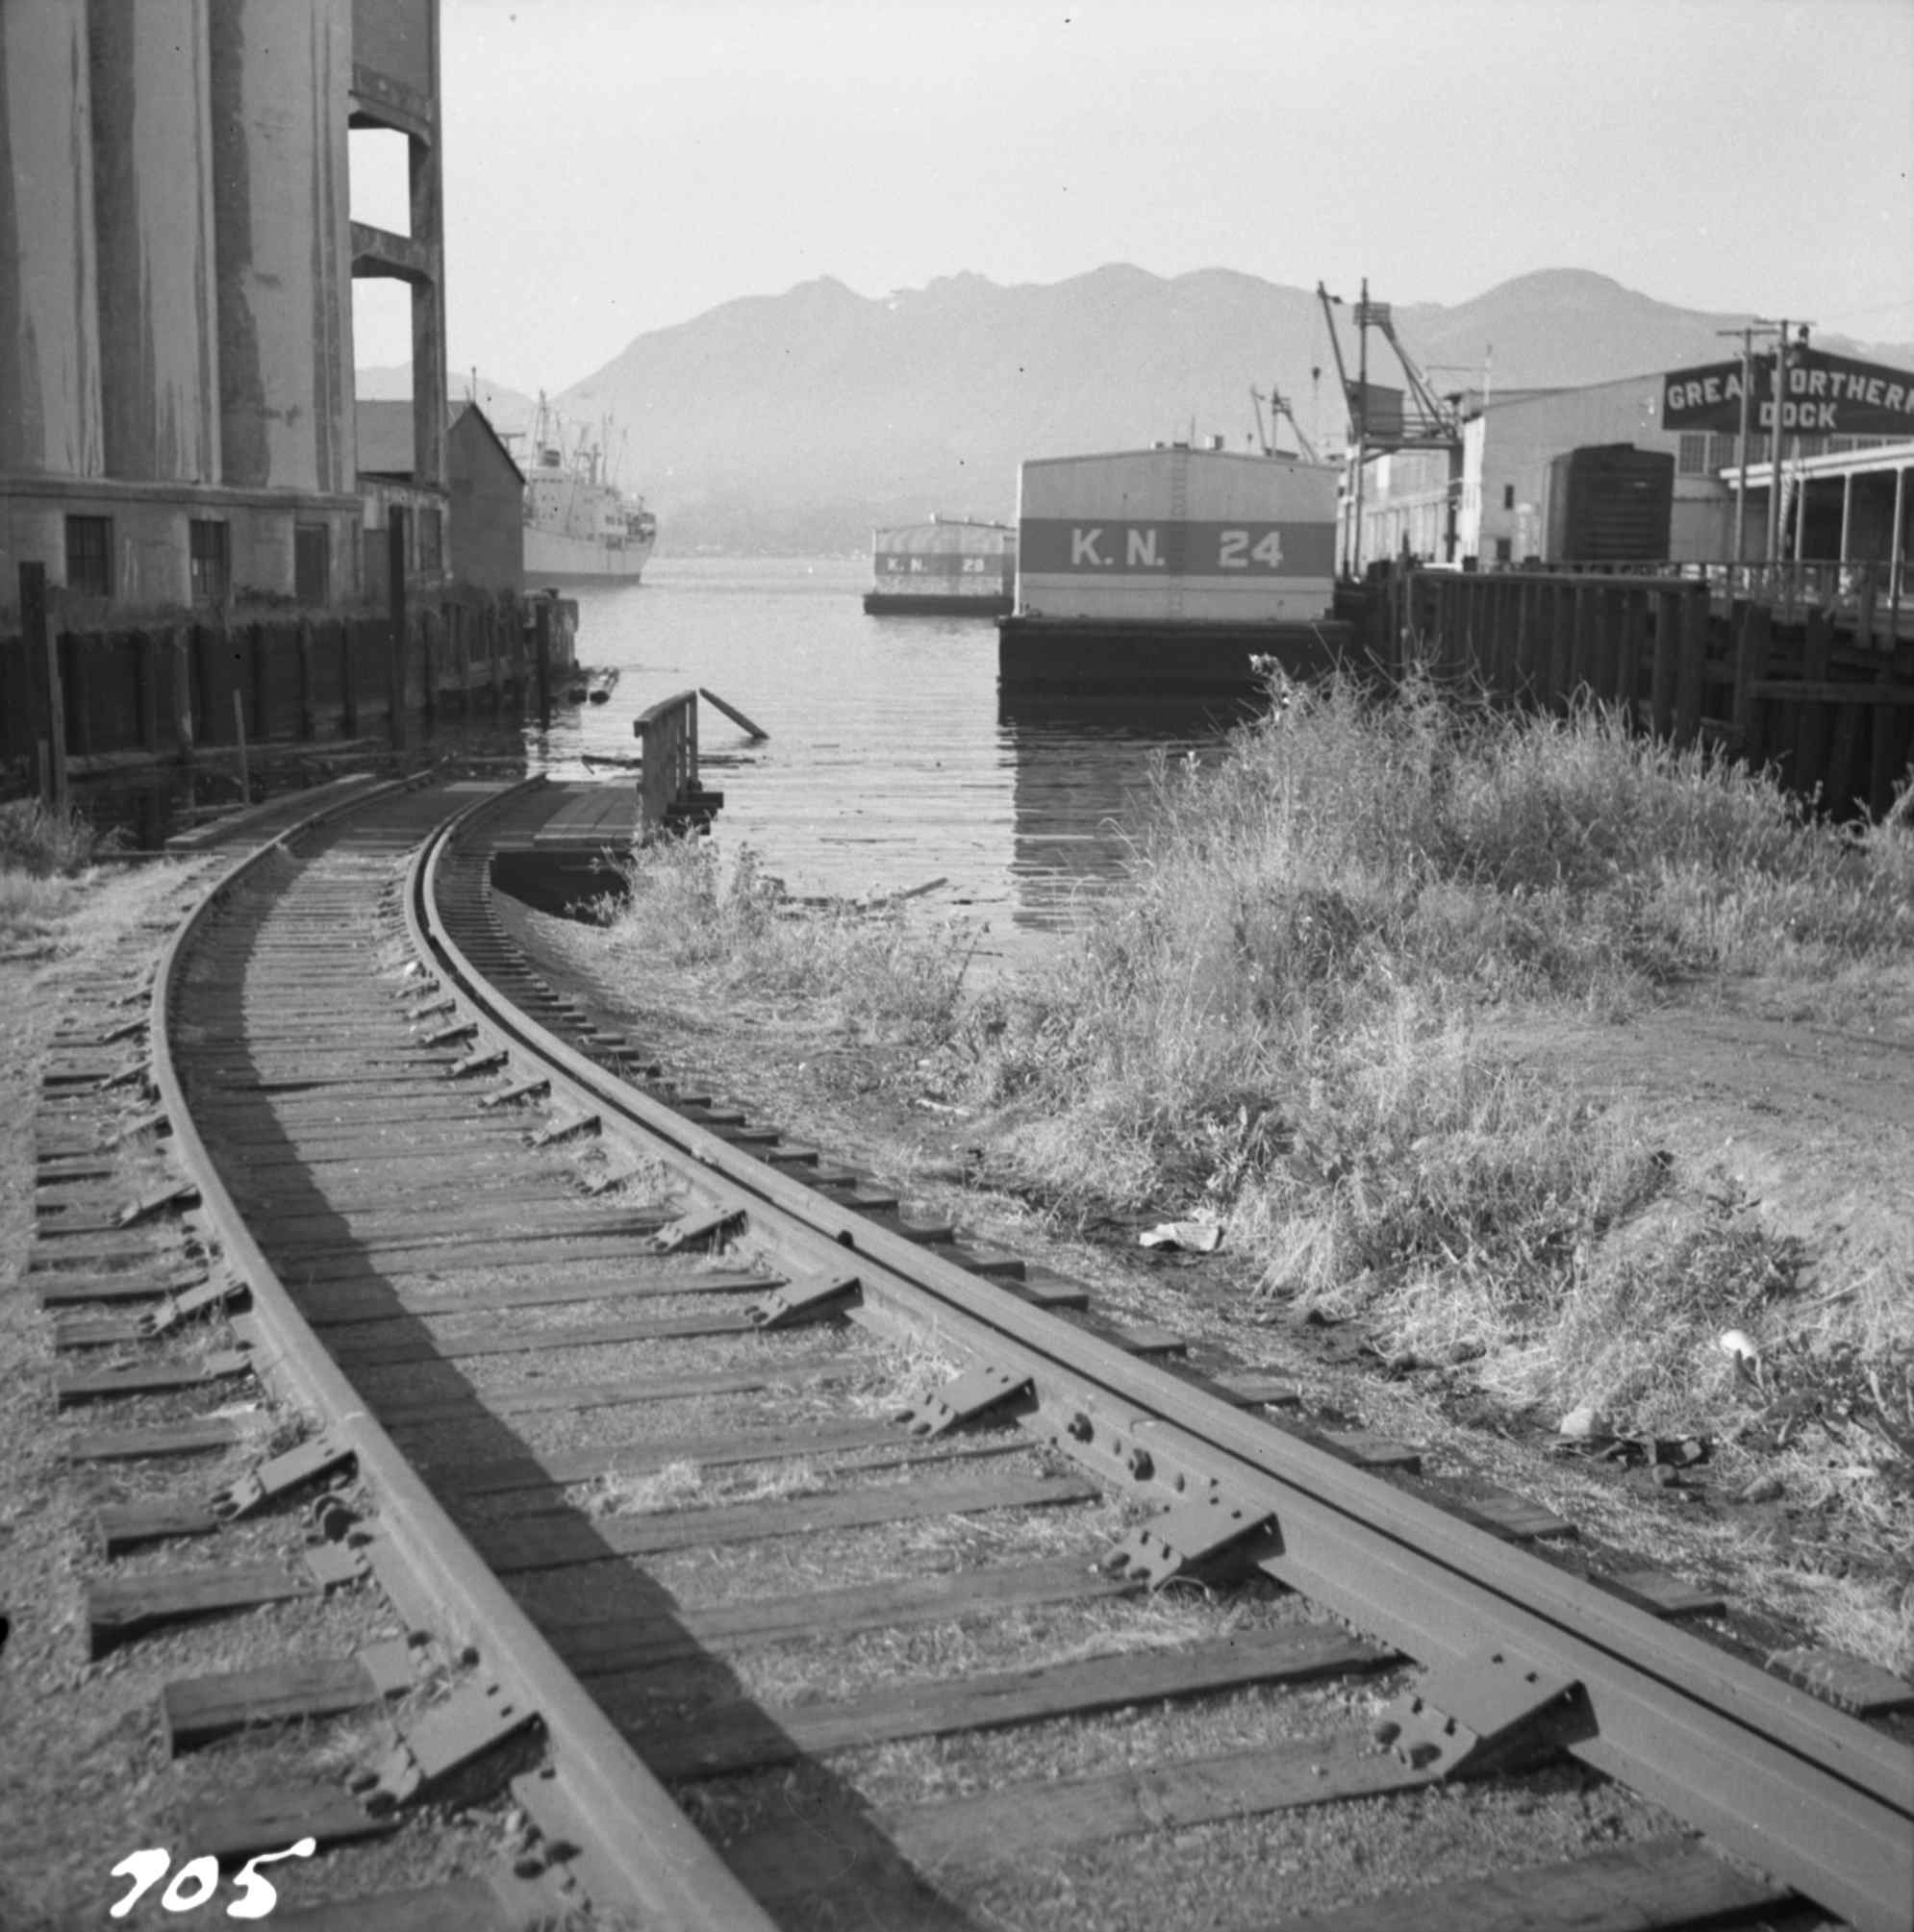 Rail barge slip in Vancouver harbour - Northern BC Archives